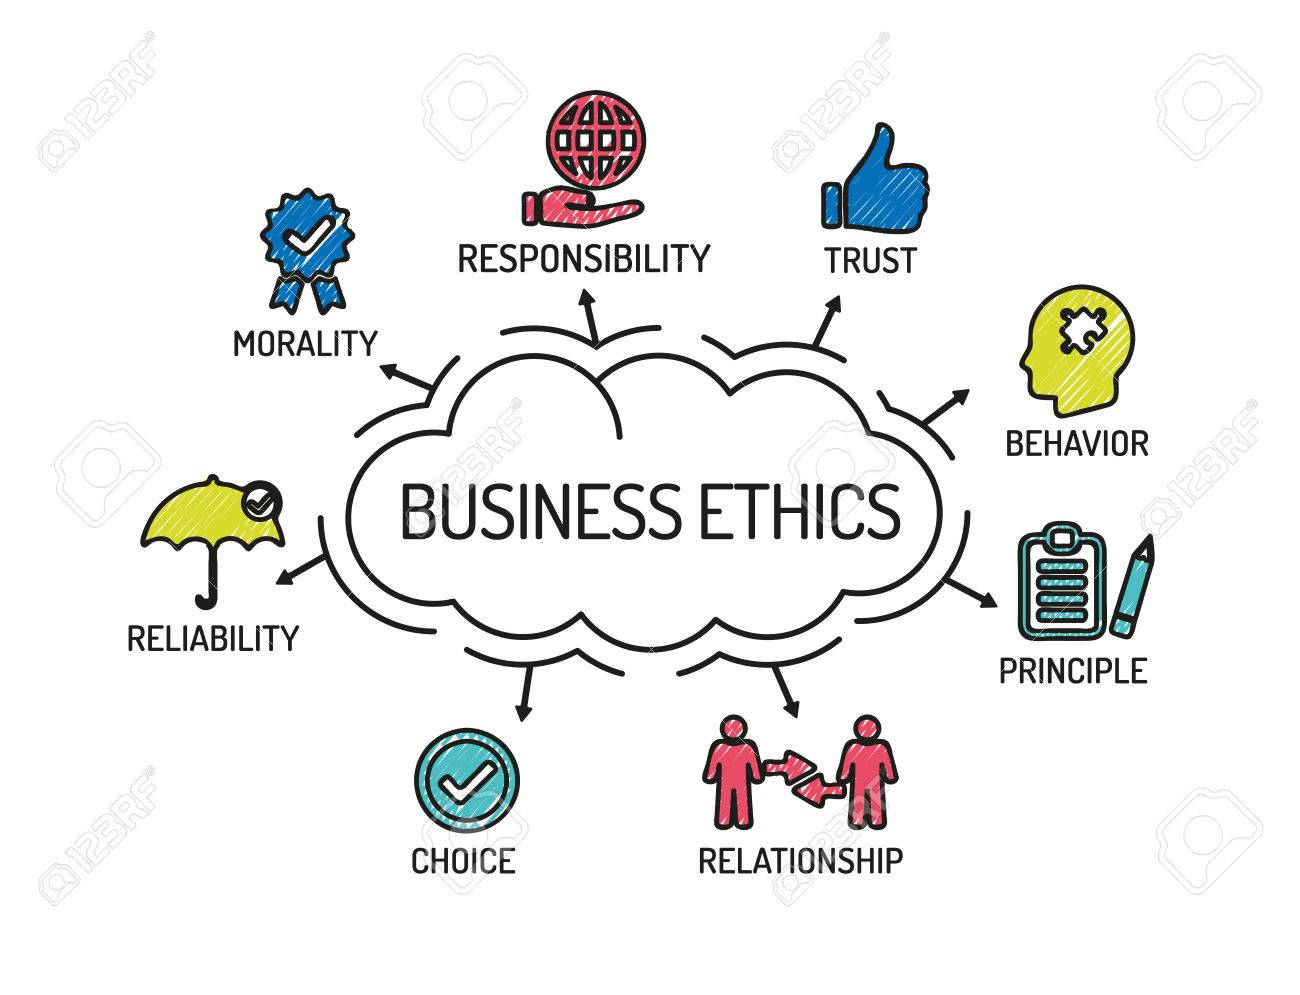 world com ethics A high-quality mba ethics curriculum typically includes some discussion-based lessons, experts say ilana kowarski sept 27, 2018 the latest  the ceos who rule the world.